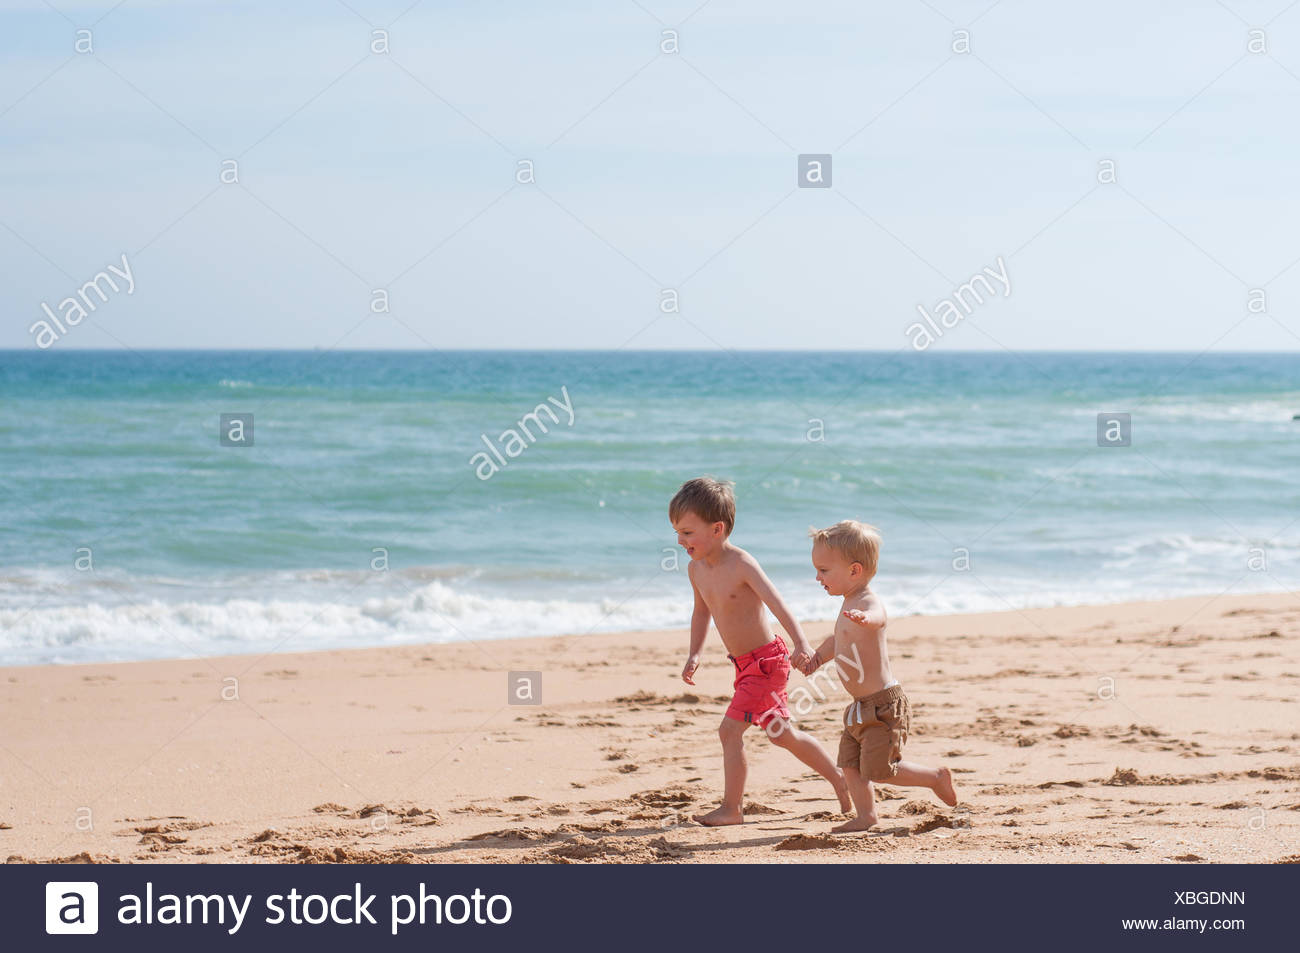 Two boys holding hands,  running on the beach - Stock Image